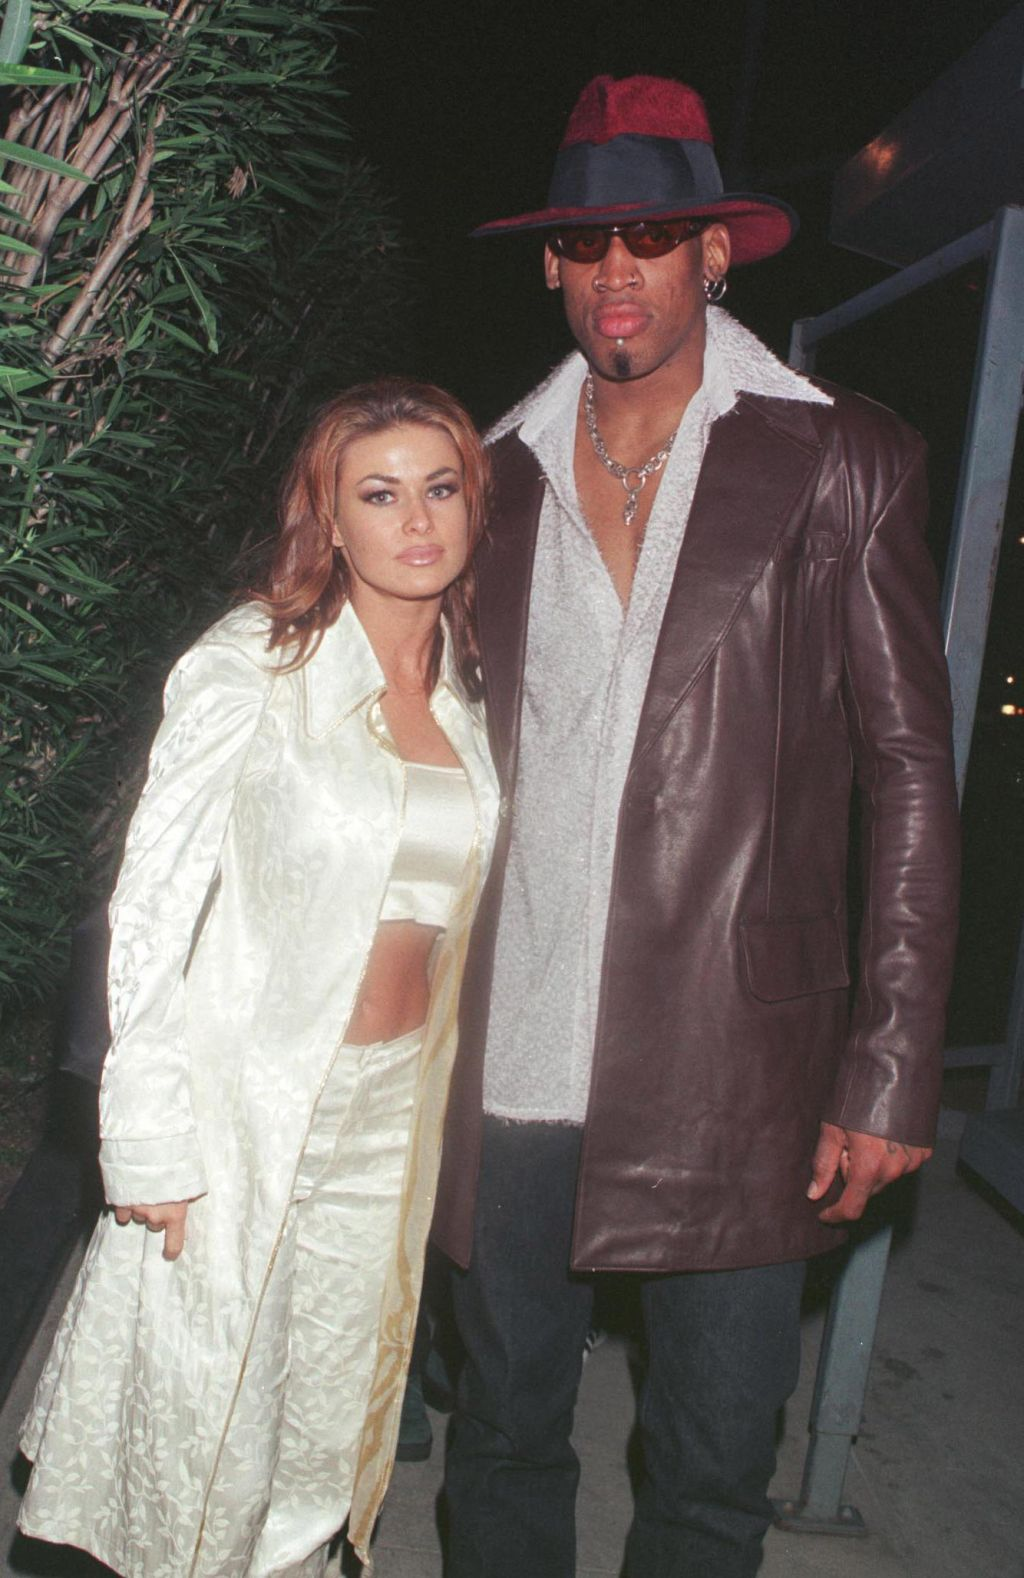 New Laker Dennis Rodman celebrates his first winning game out on the town at GOODBAR with wife Carmen Electra...